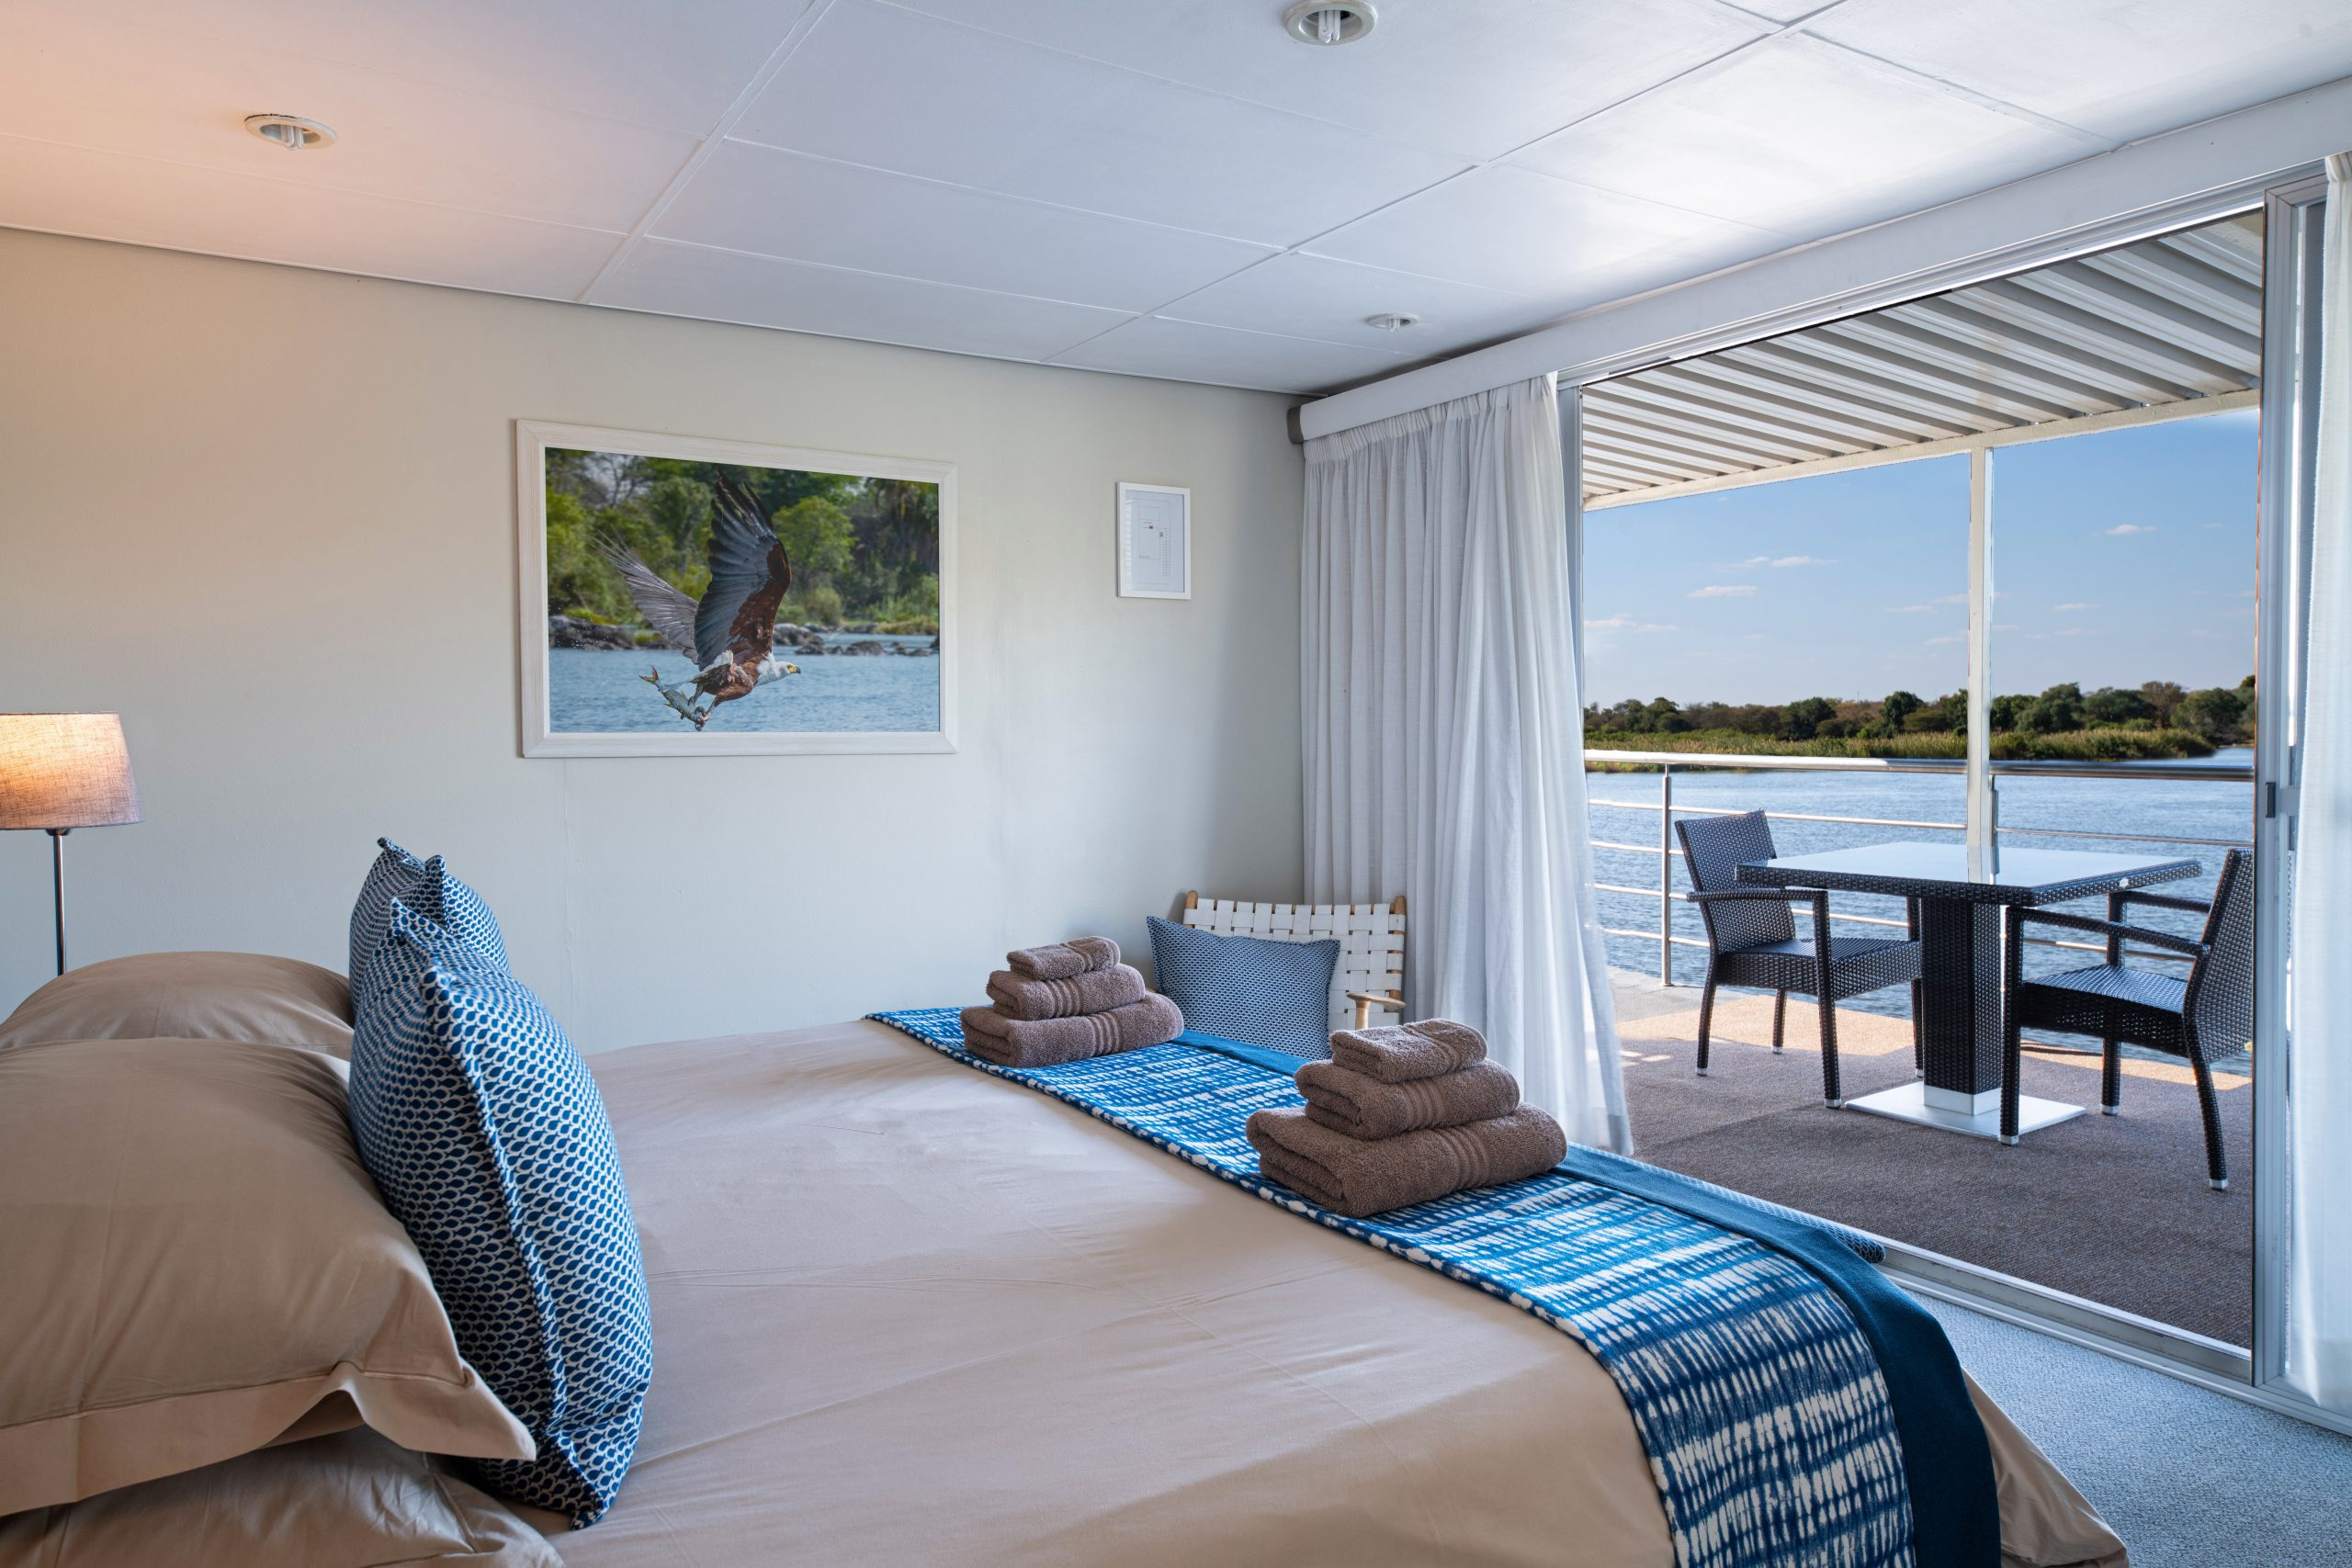 Chobe Princess boat cruise interior view from room with double bed